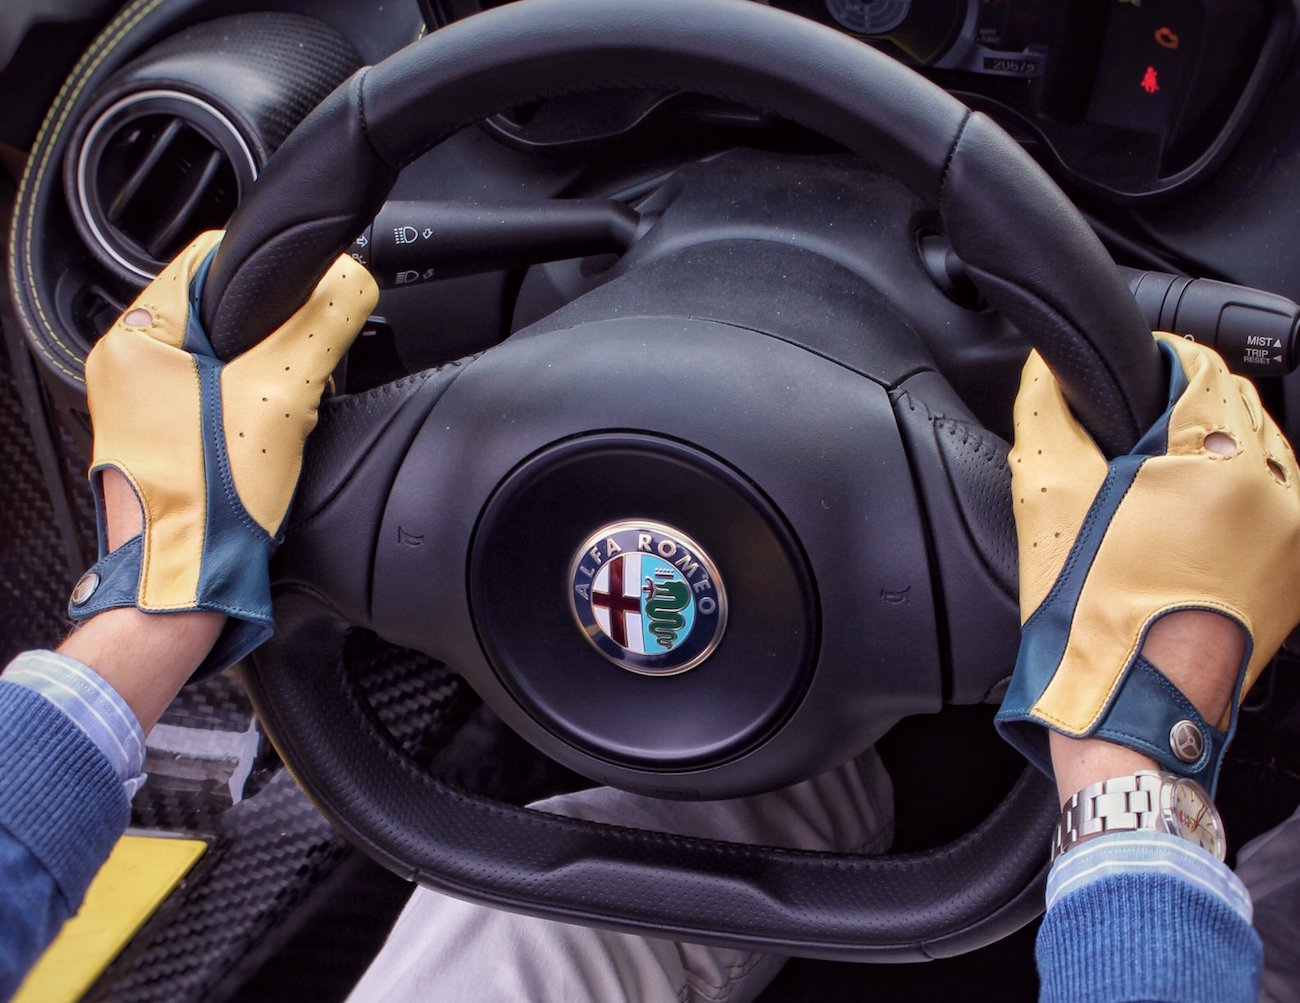 Leather driving gloves from drive - 12 Best Driving Gloves For Men 2017 Brown And Black Leather